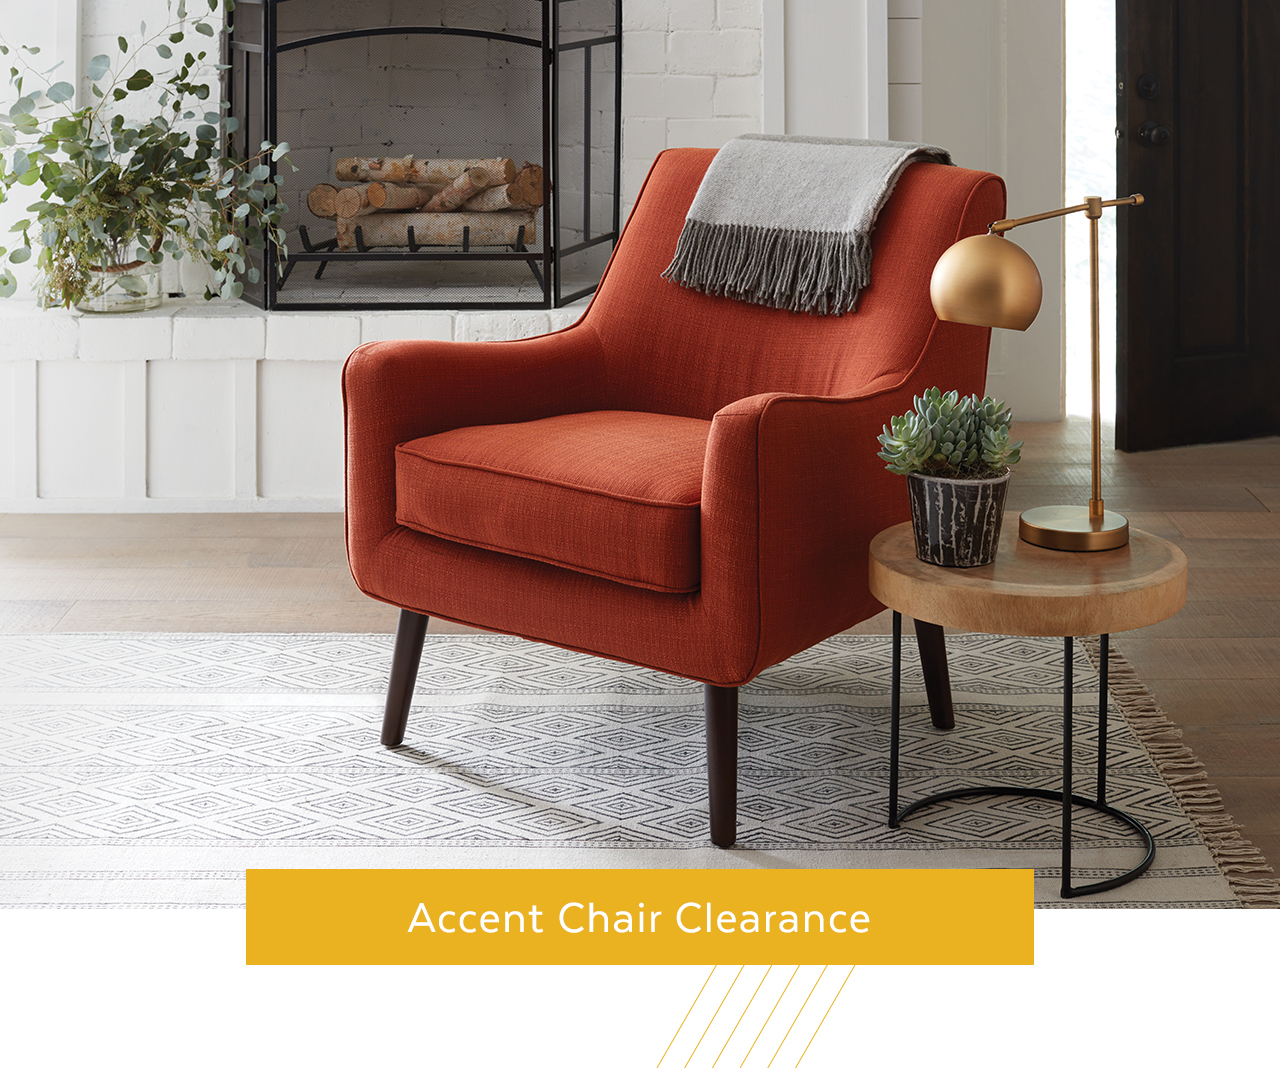 Accent Chair Clearance